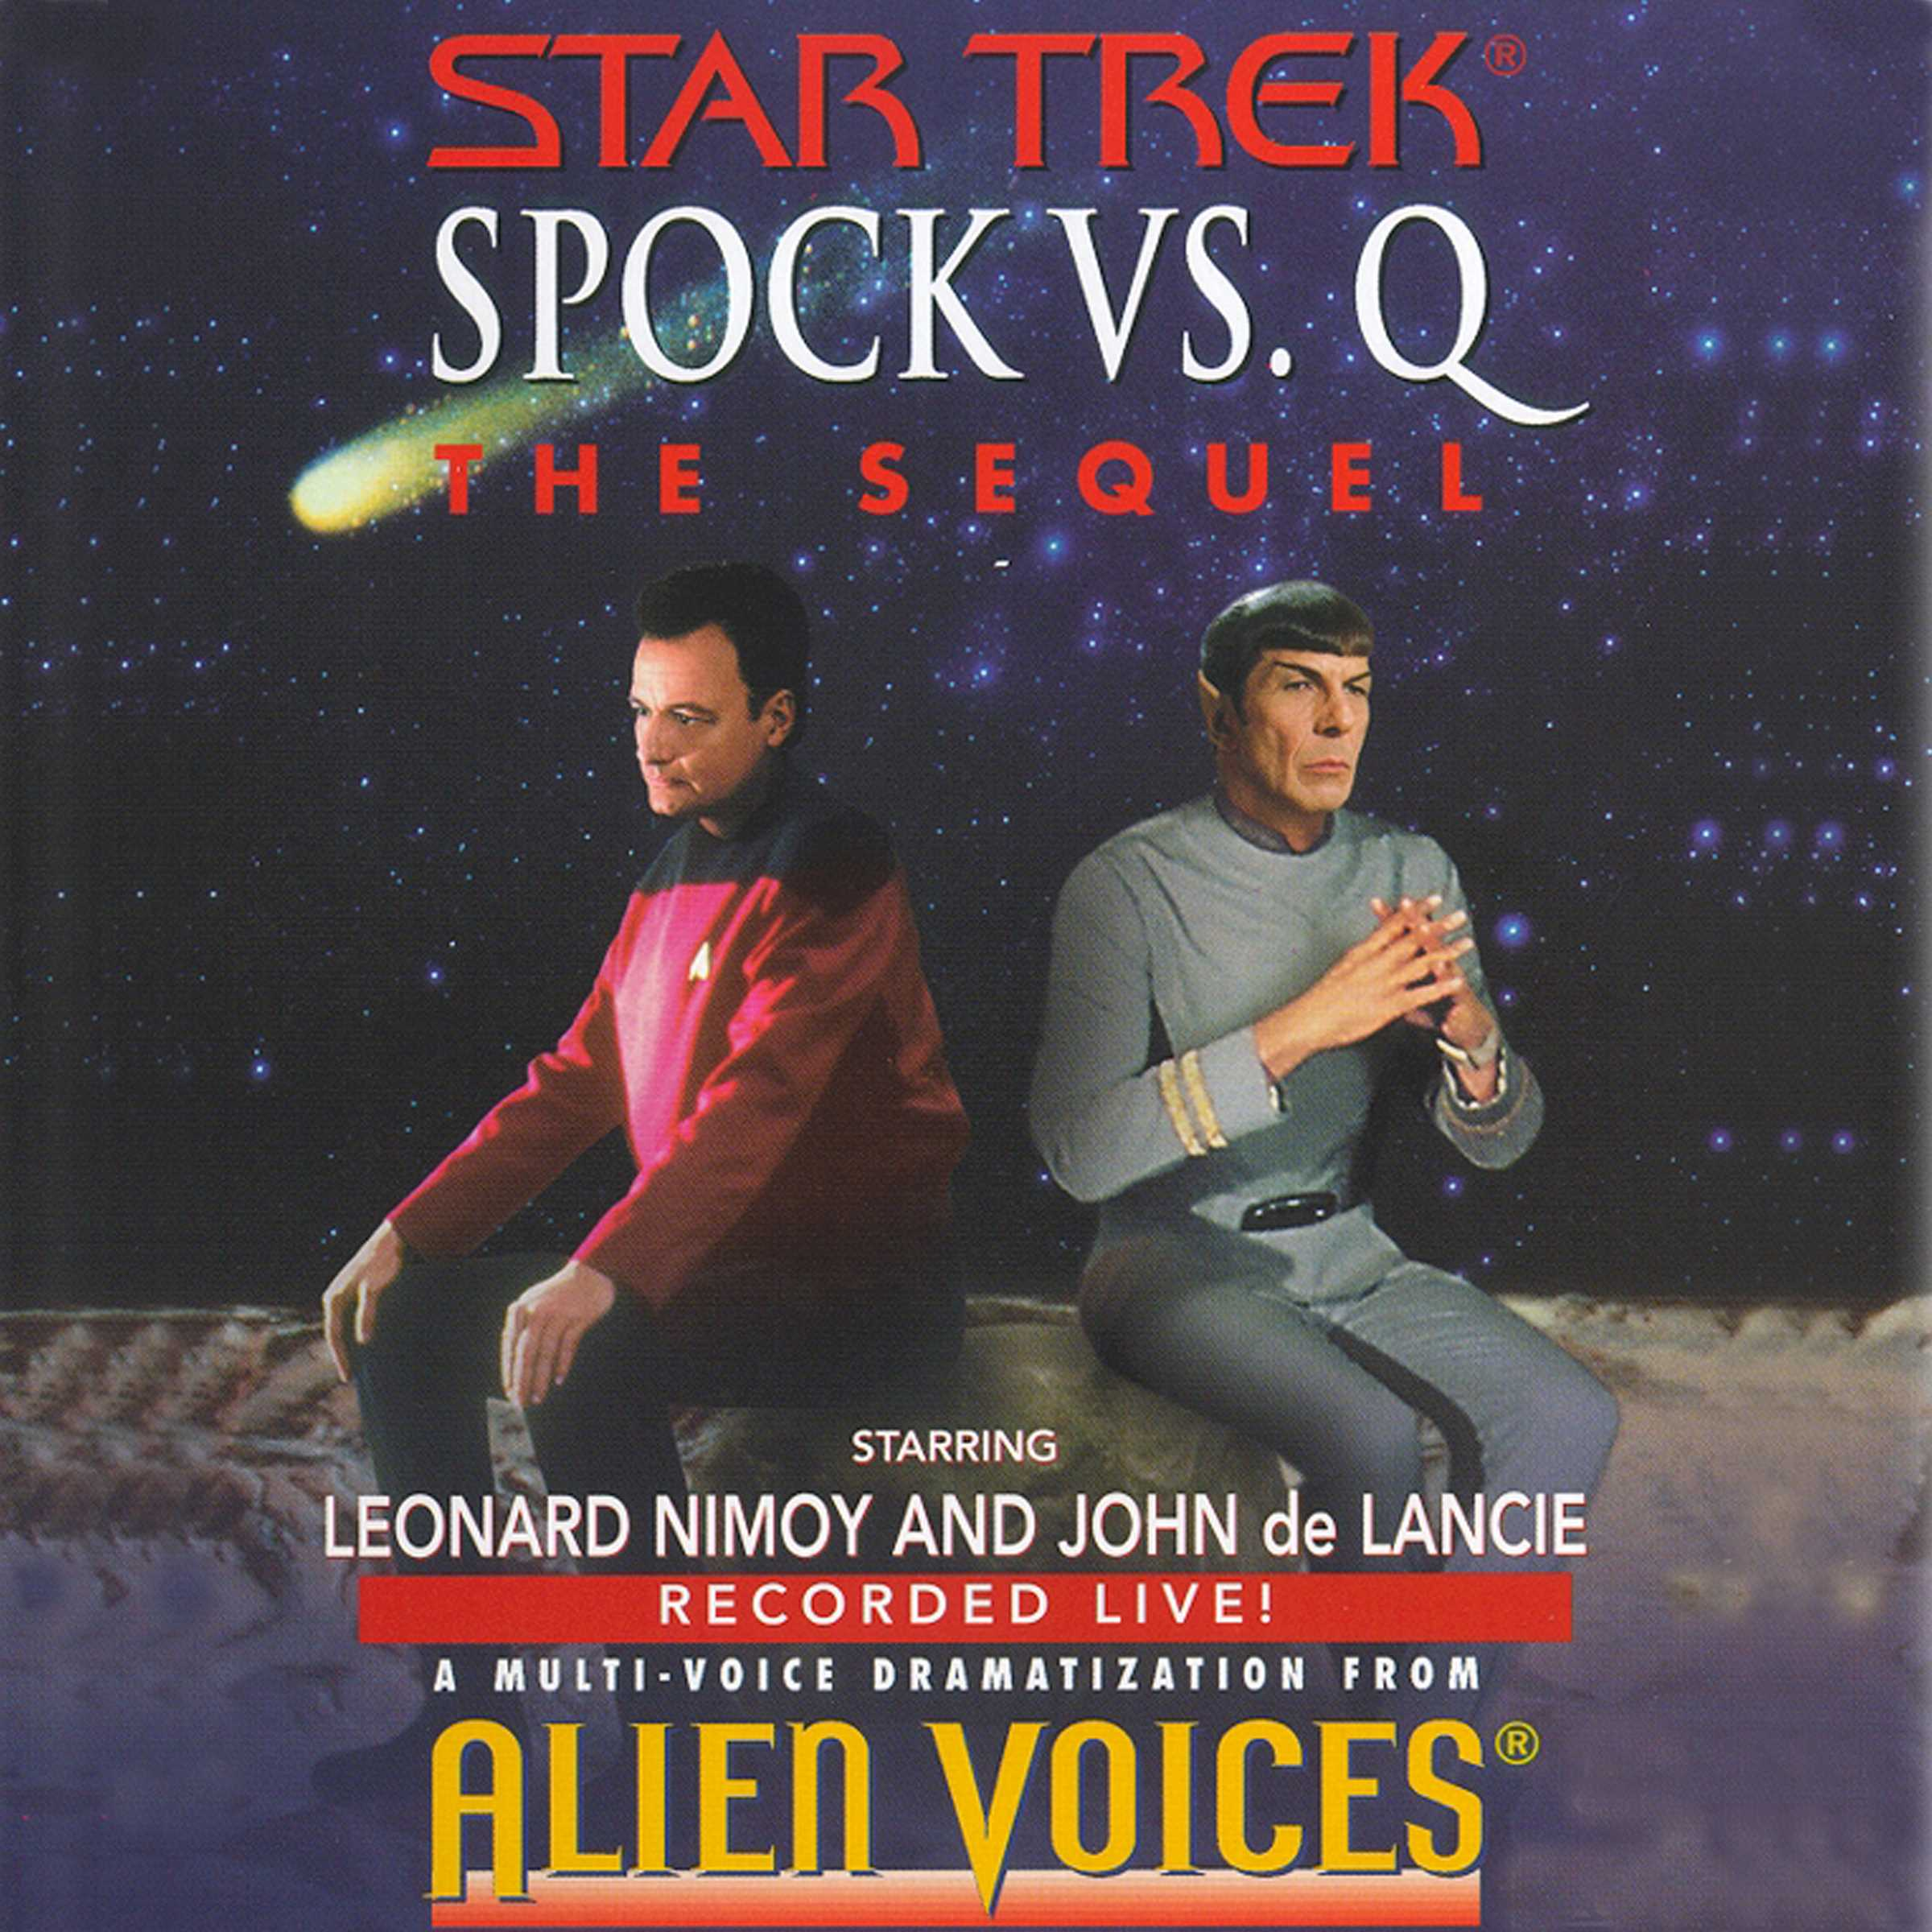 Star-trek-spock-vs-q-the-sequel-9780743569828_hr